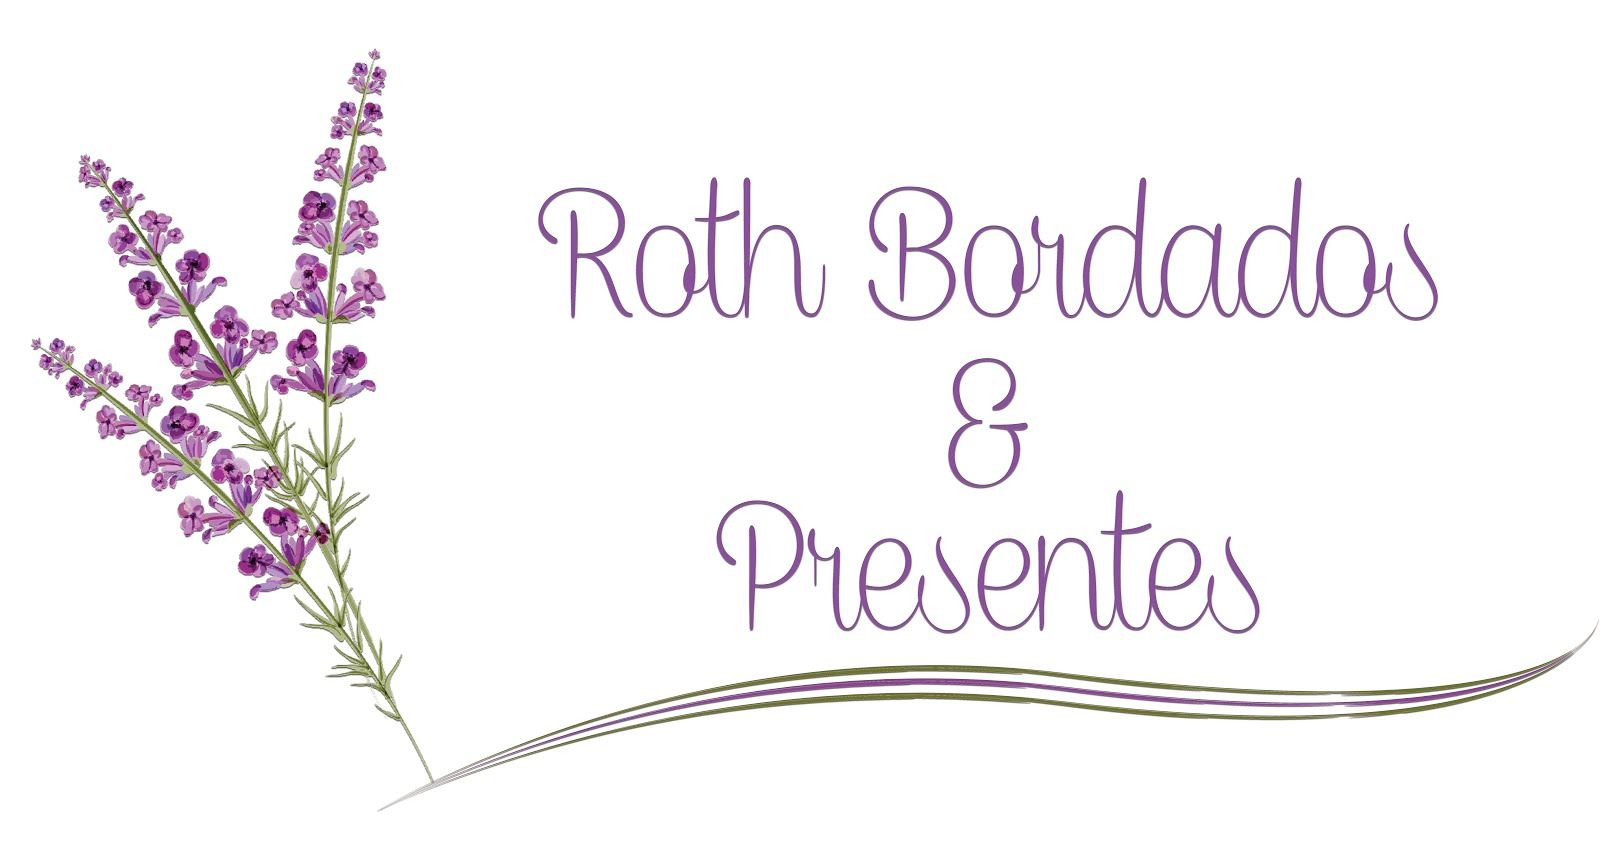 Roth Bordados e Presentes